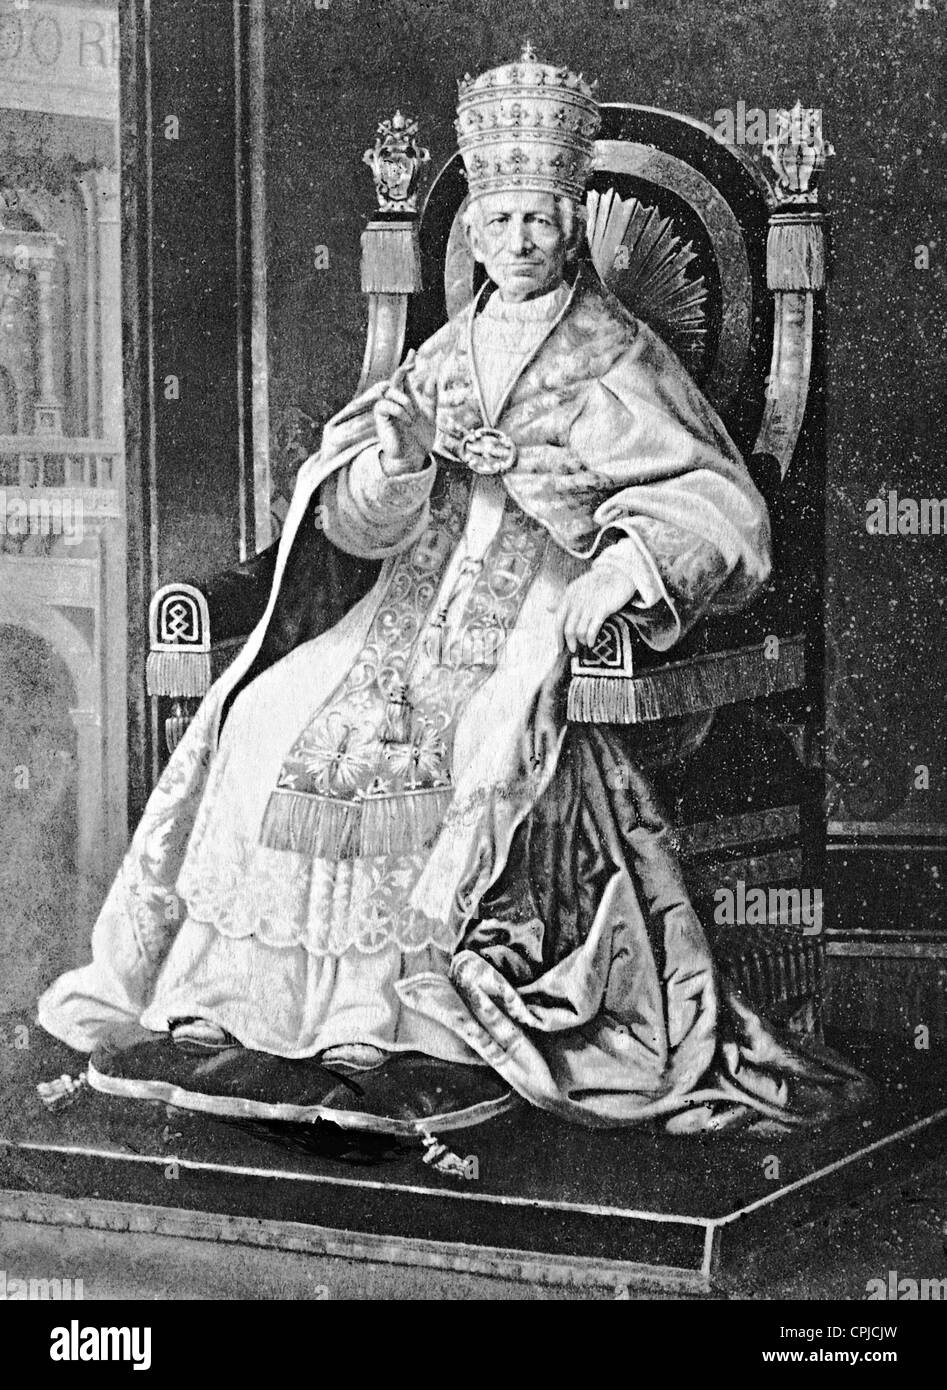 Pope Leo XIII in full regalia on the holy throne, 1897 - Stock Image